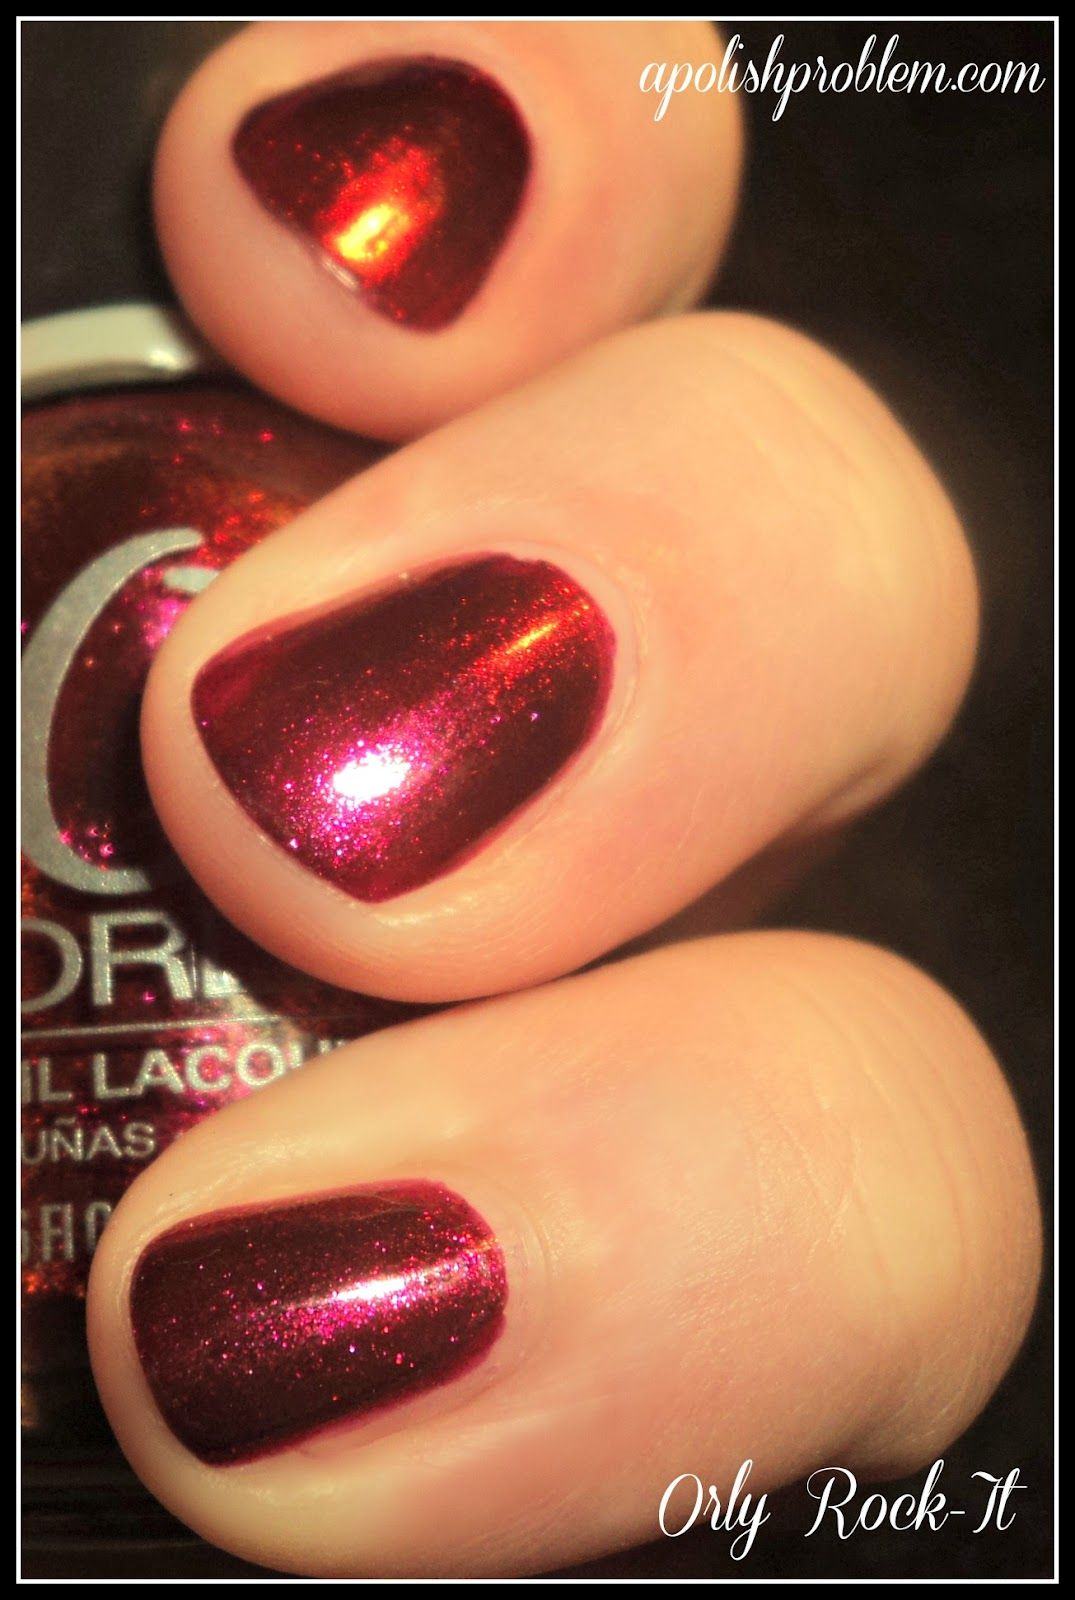 Orly RockIt Nail polish, Nails, Polish